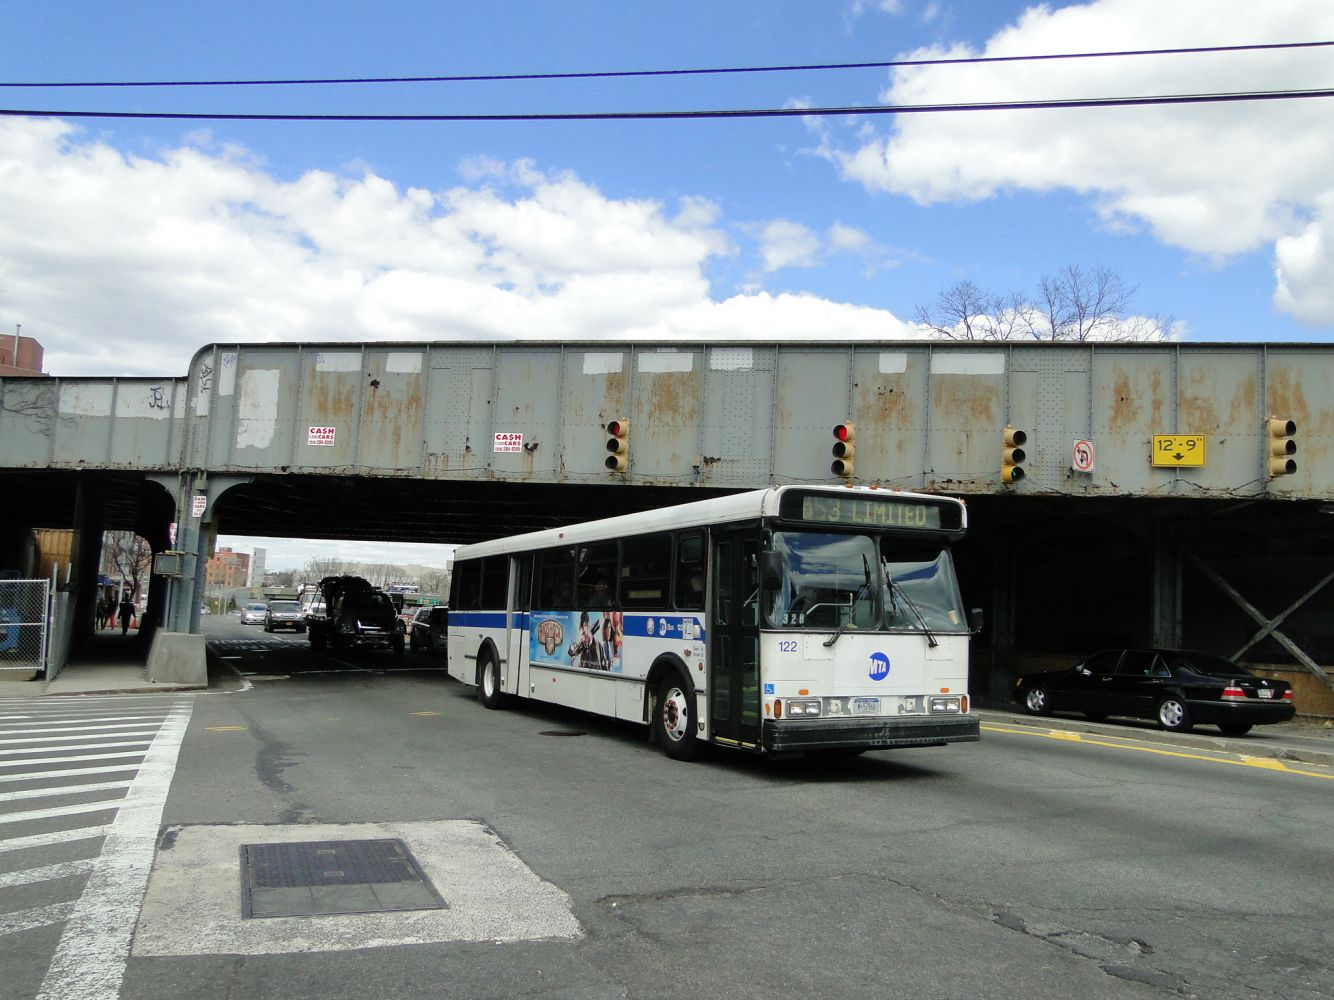 Orion V Q53 at Woodhaven Blvd and Eliot Avenue